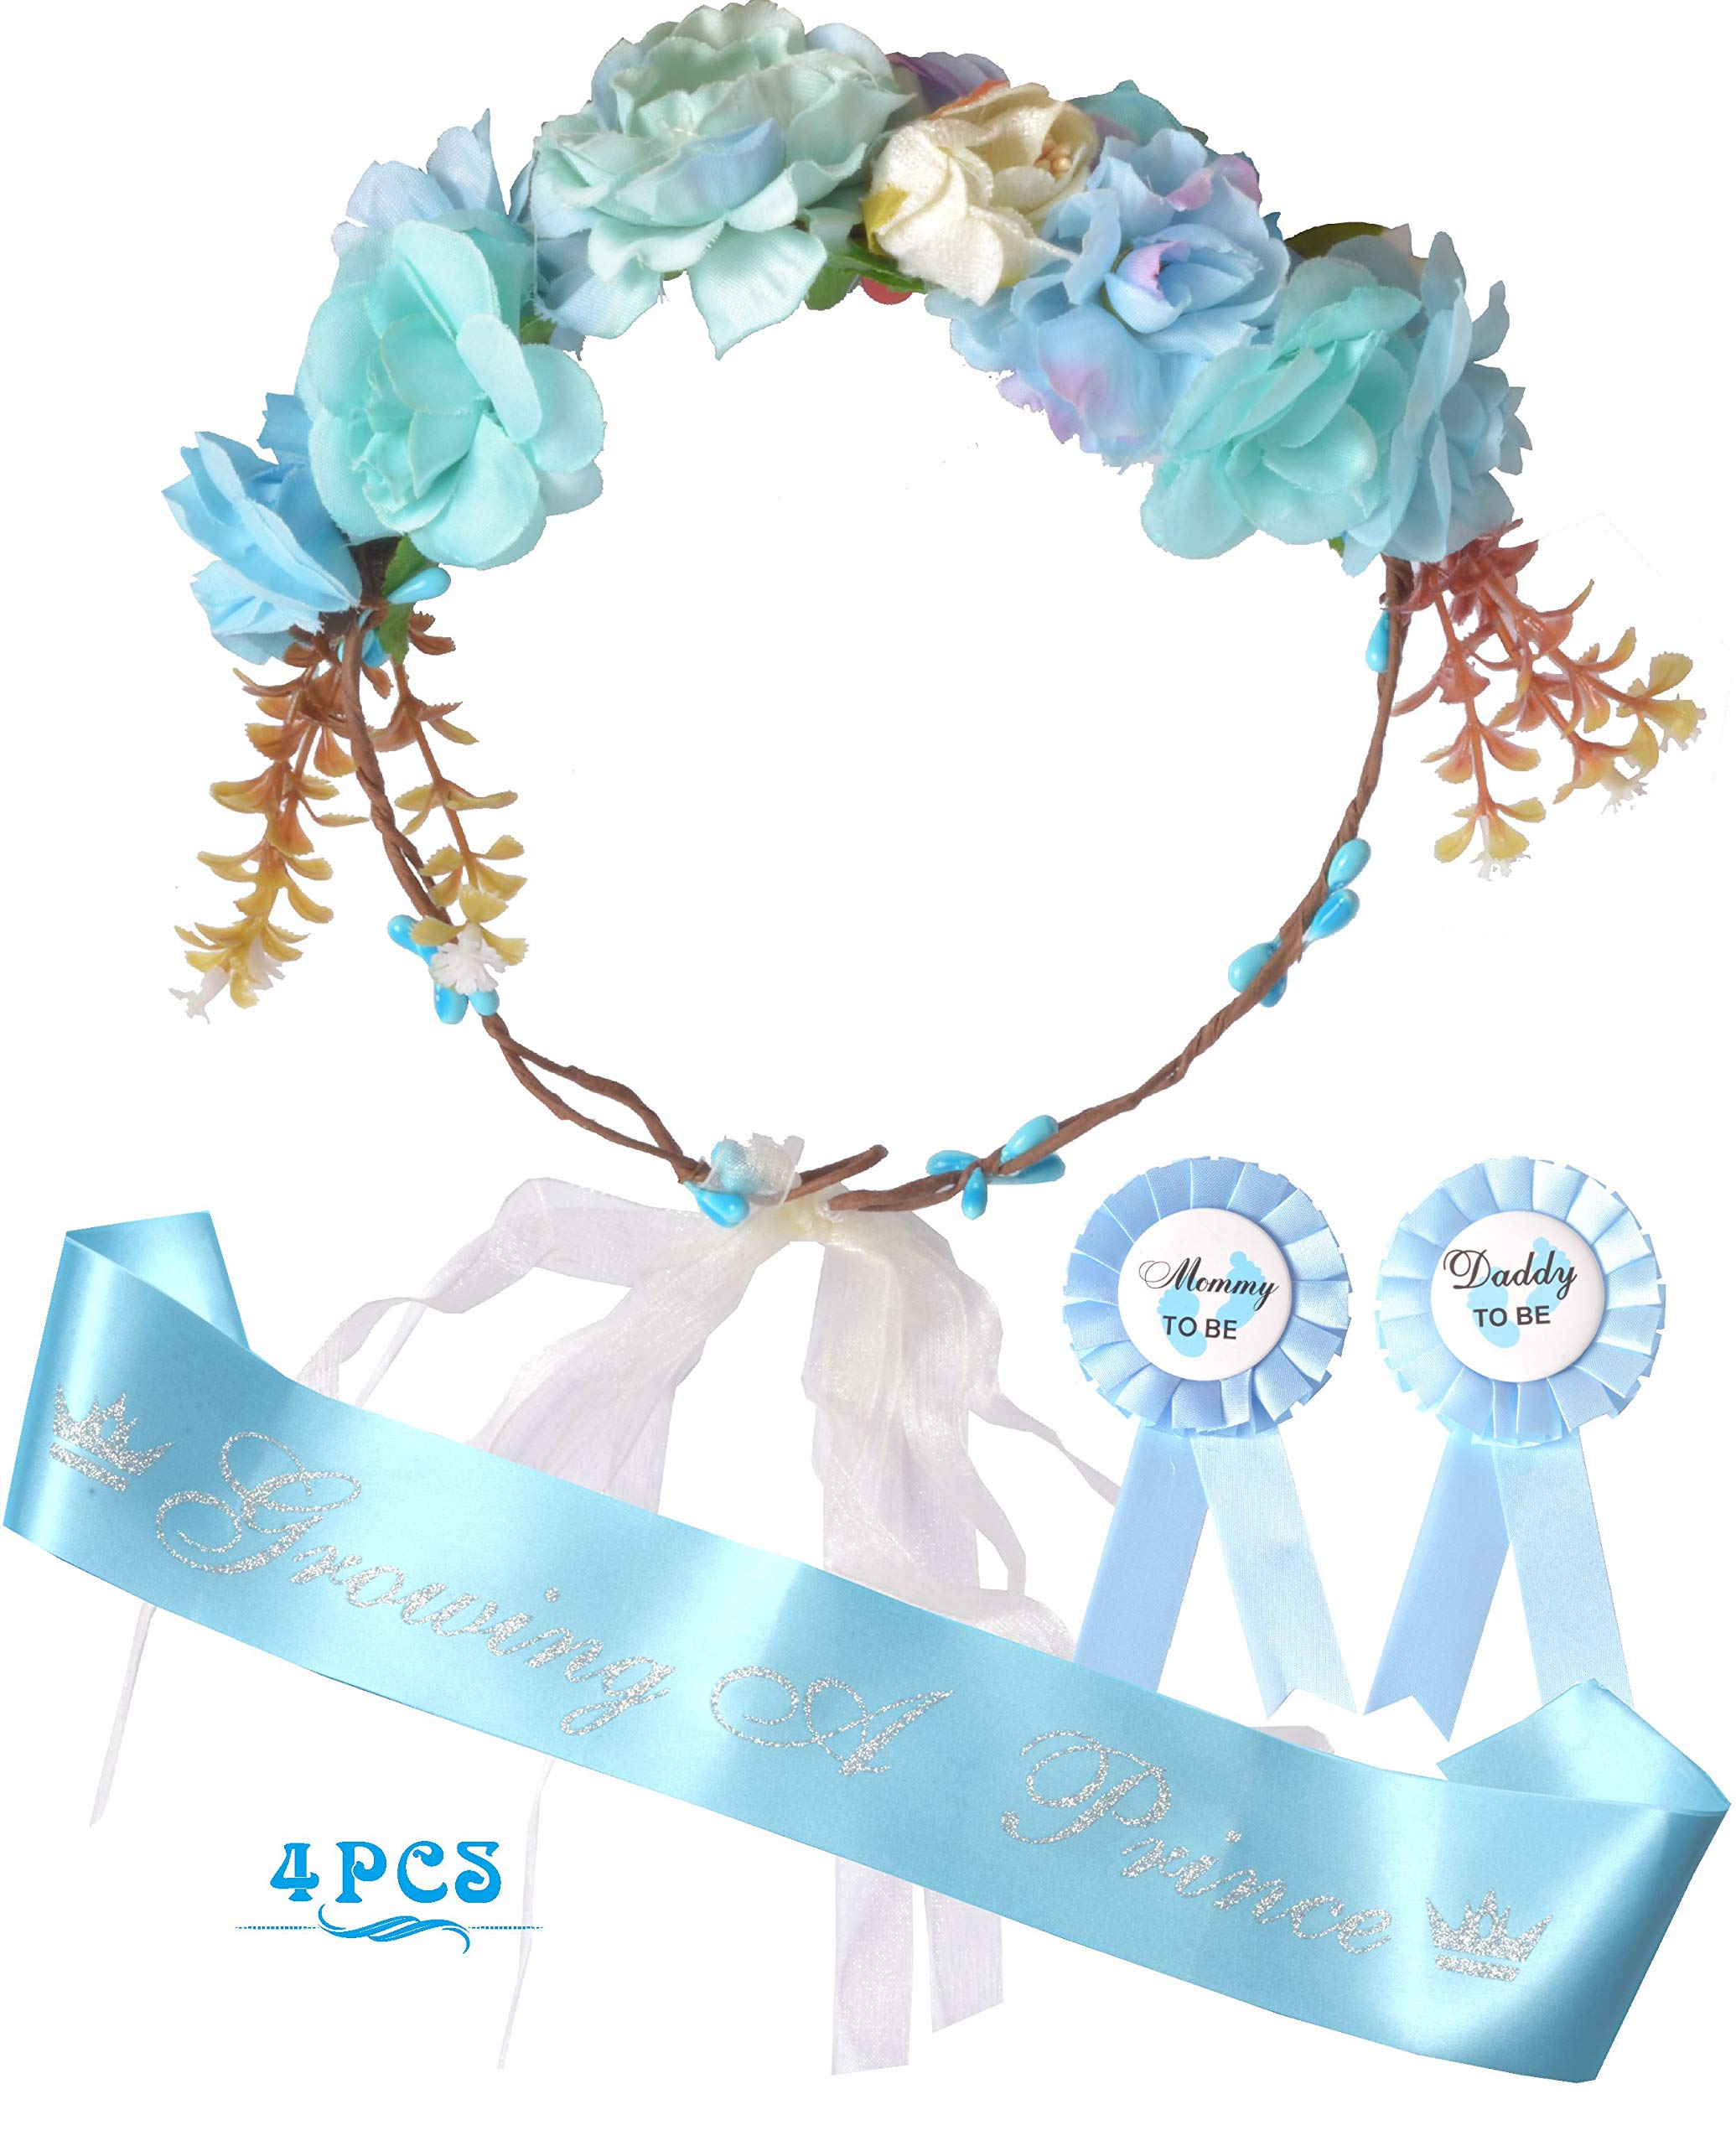 Mother To Be Flower Crown Blue | Growing a prince Sash and Mom to be Pin | Dad To Be Pin | Blue Baby Shower Party Favors Decorations Gift for Boy